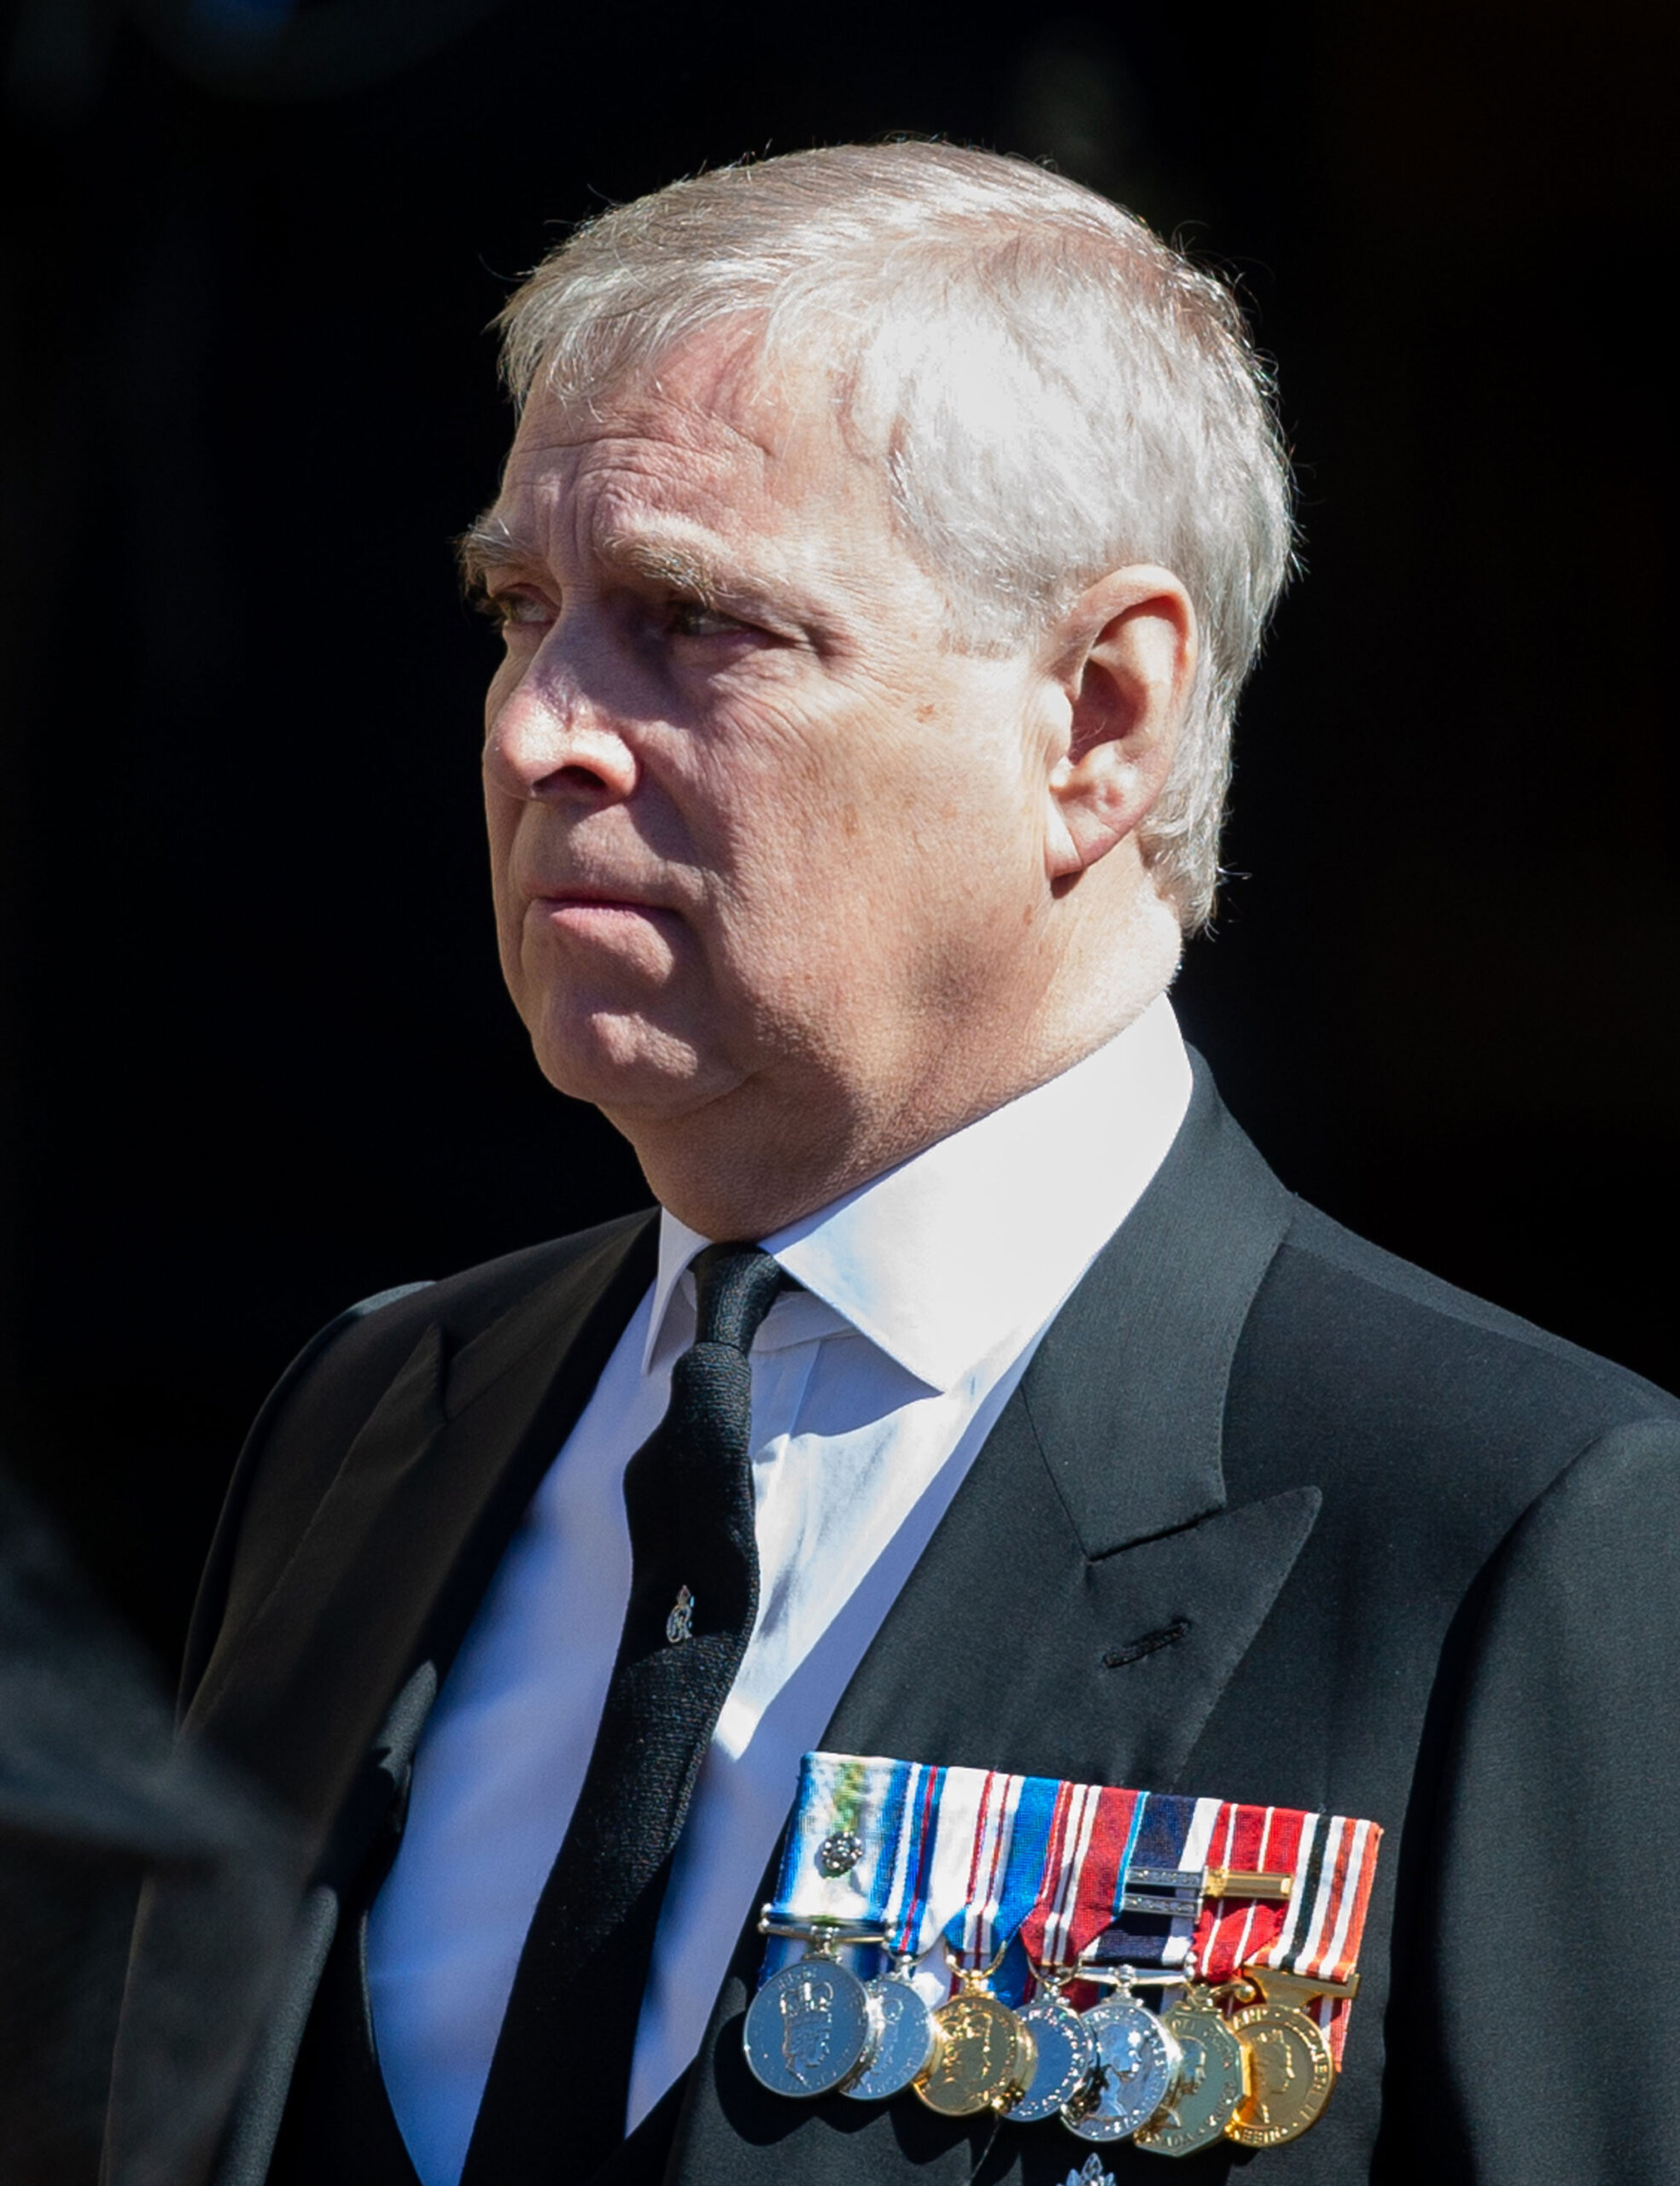 <i>Samir Hussein/WireImage/Getty Images</i><br/>Prince Andrew